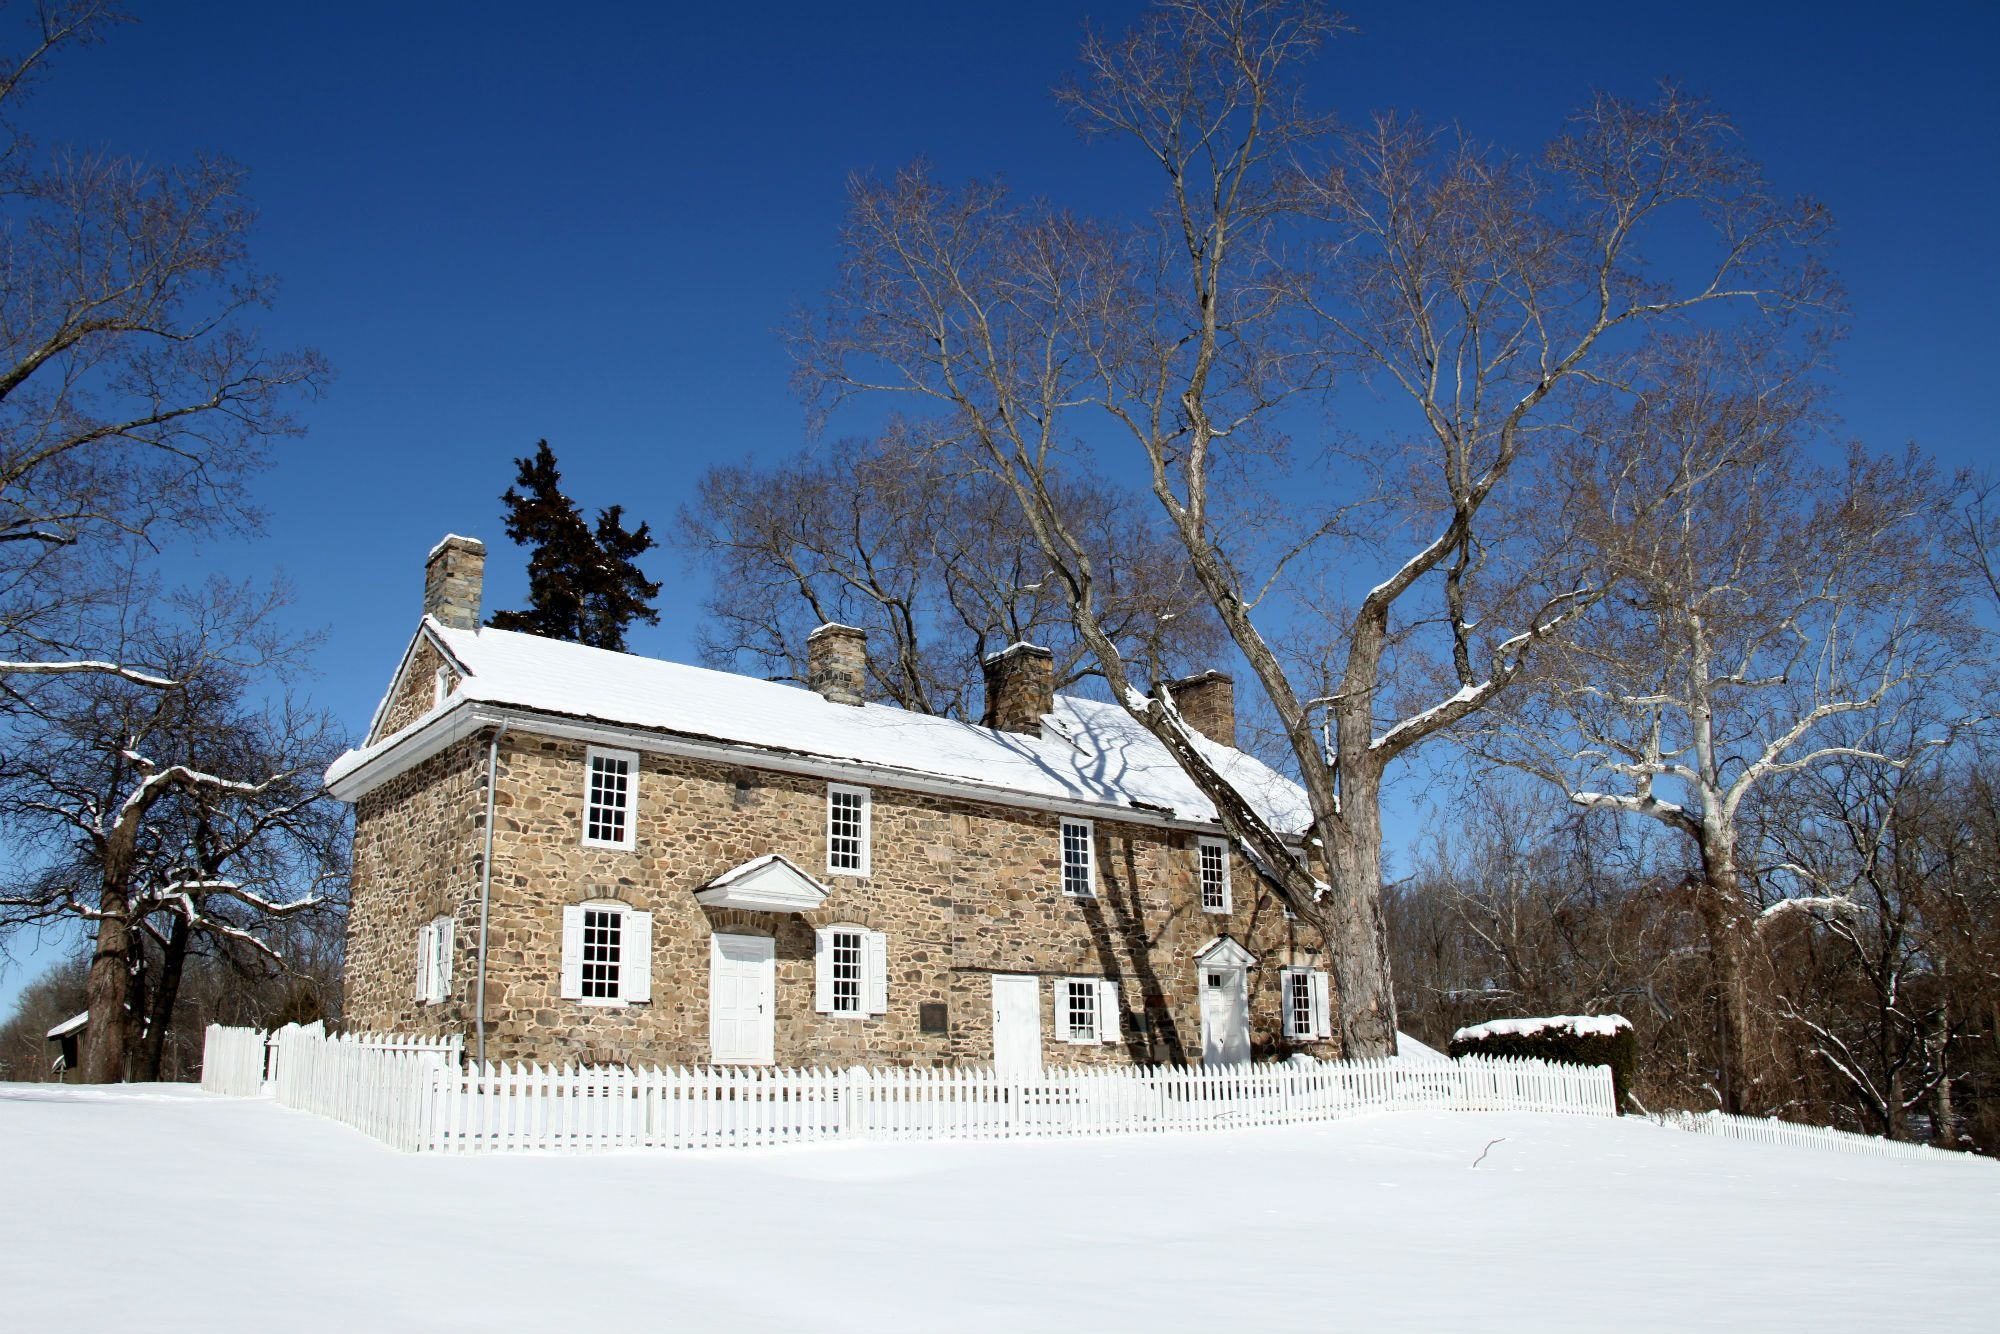 Snowy Home in Bucks County Pennsylvania